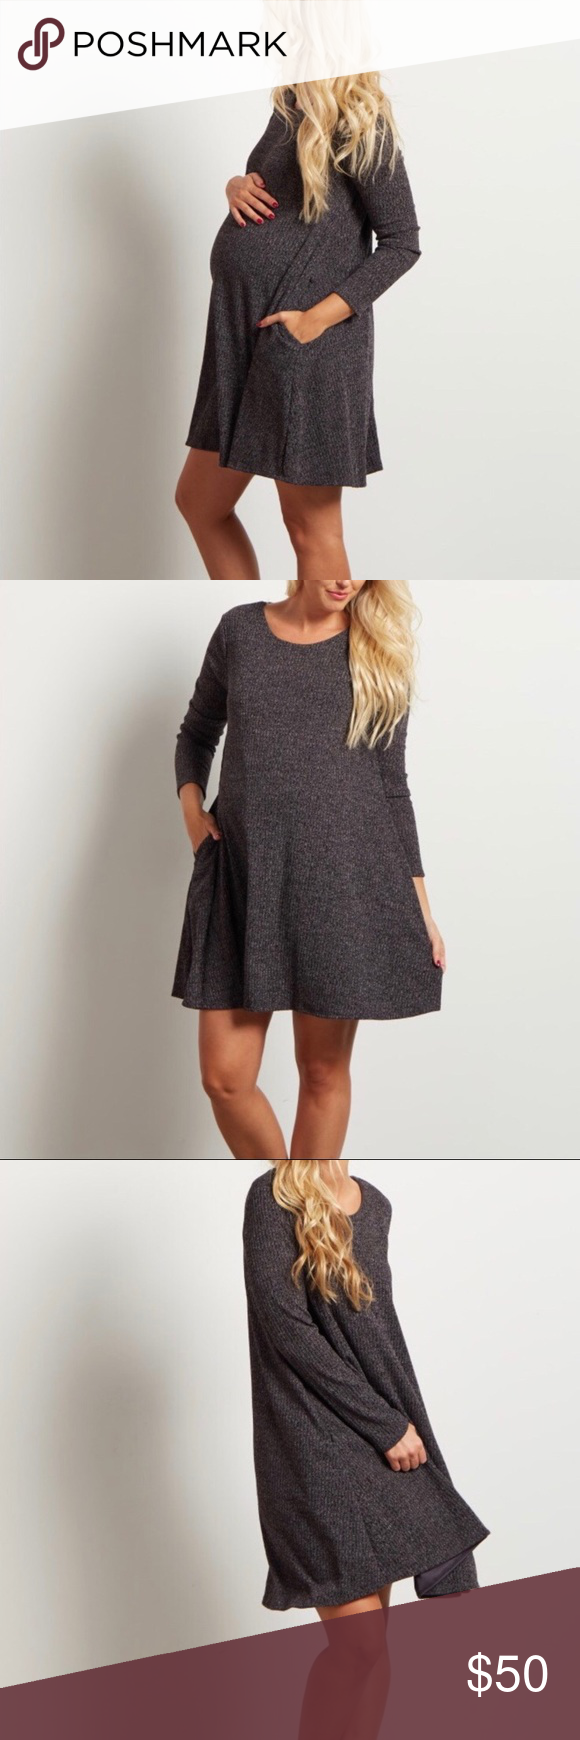 Pinkblush long sleeve maternity sweater dress my posh closet